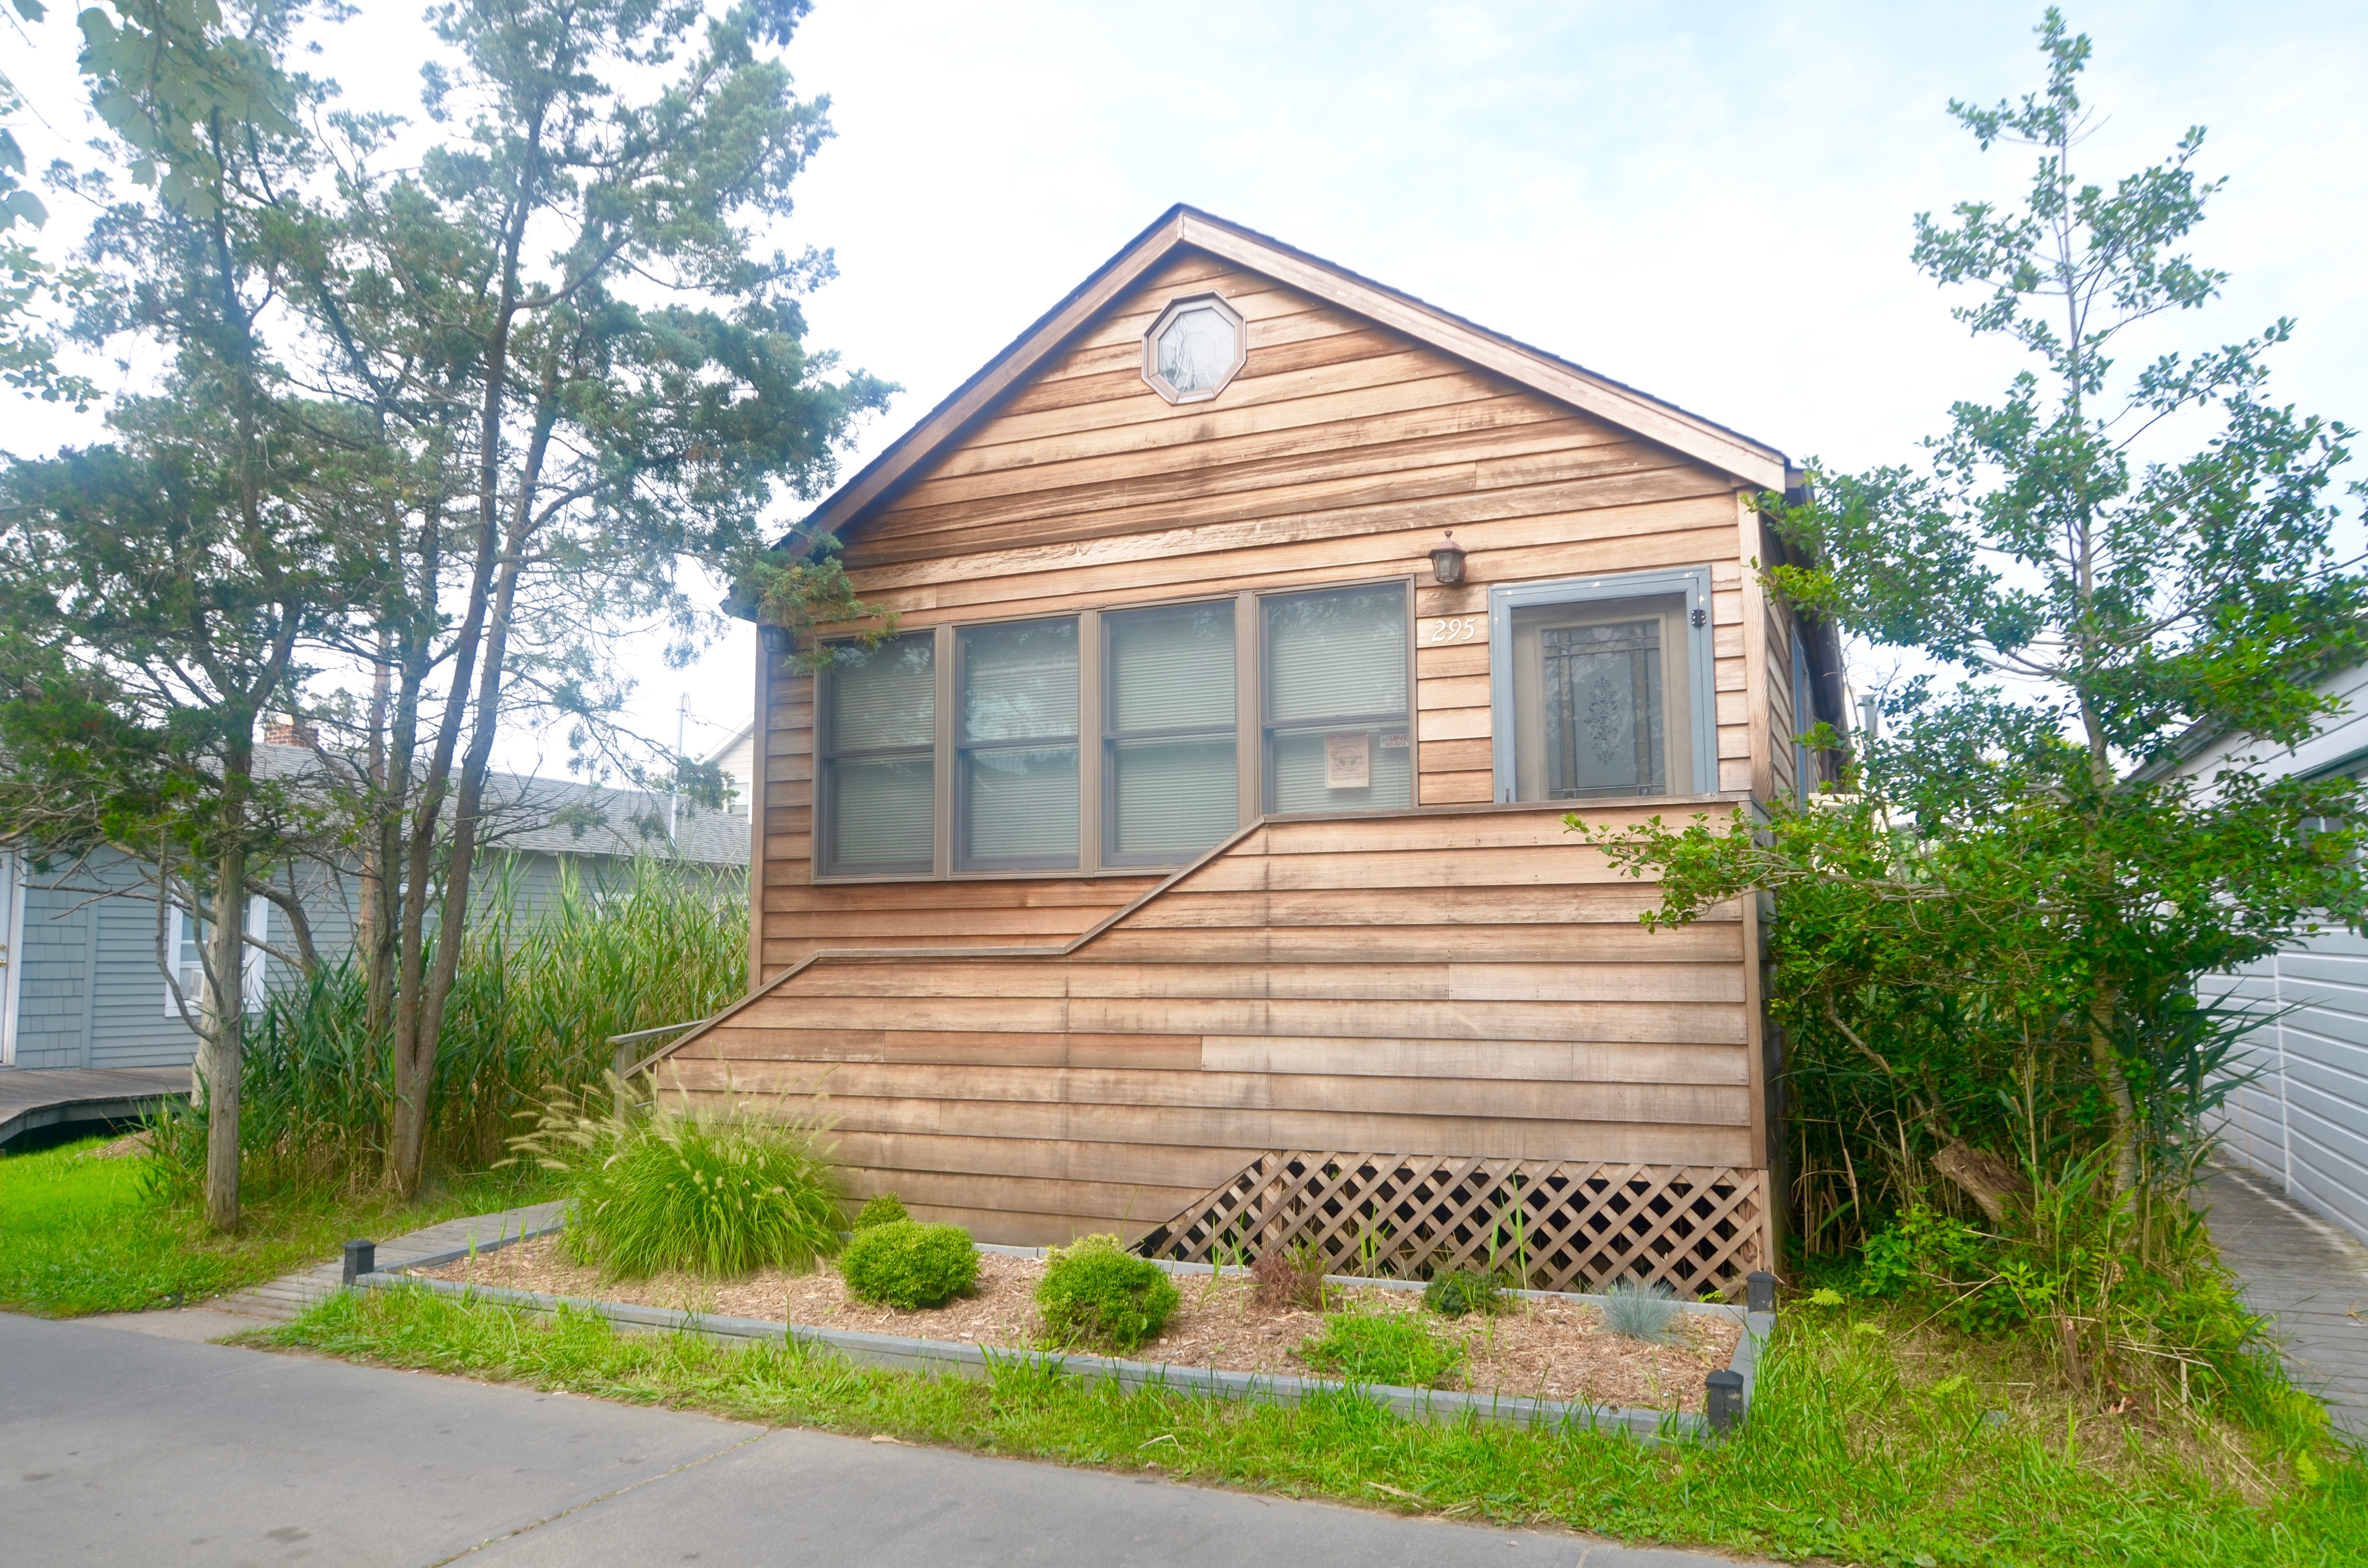 This welcoming cottage is suitable for year round use.  The comfortable living area is open to the kitchen and dining area.  Roof and foundation recently replaced.  Large master bedroom with attached half bath.  Sunny rear deck and outdoor shower.  Great starter home at an excellent price!